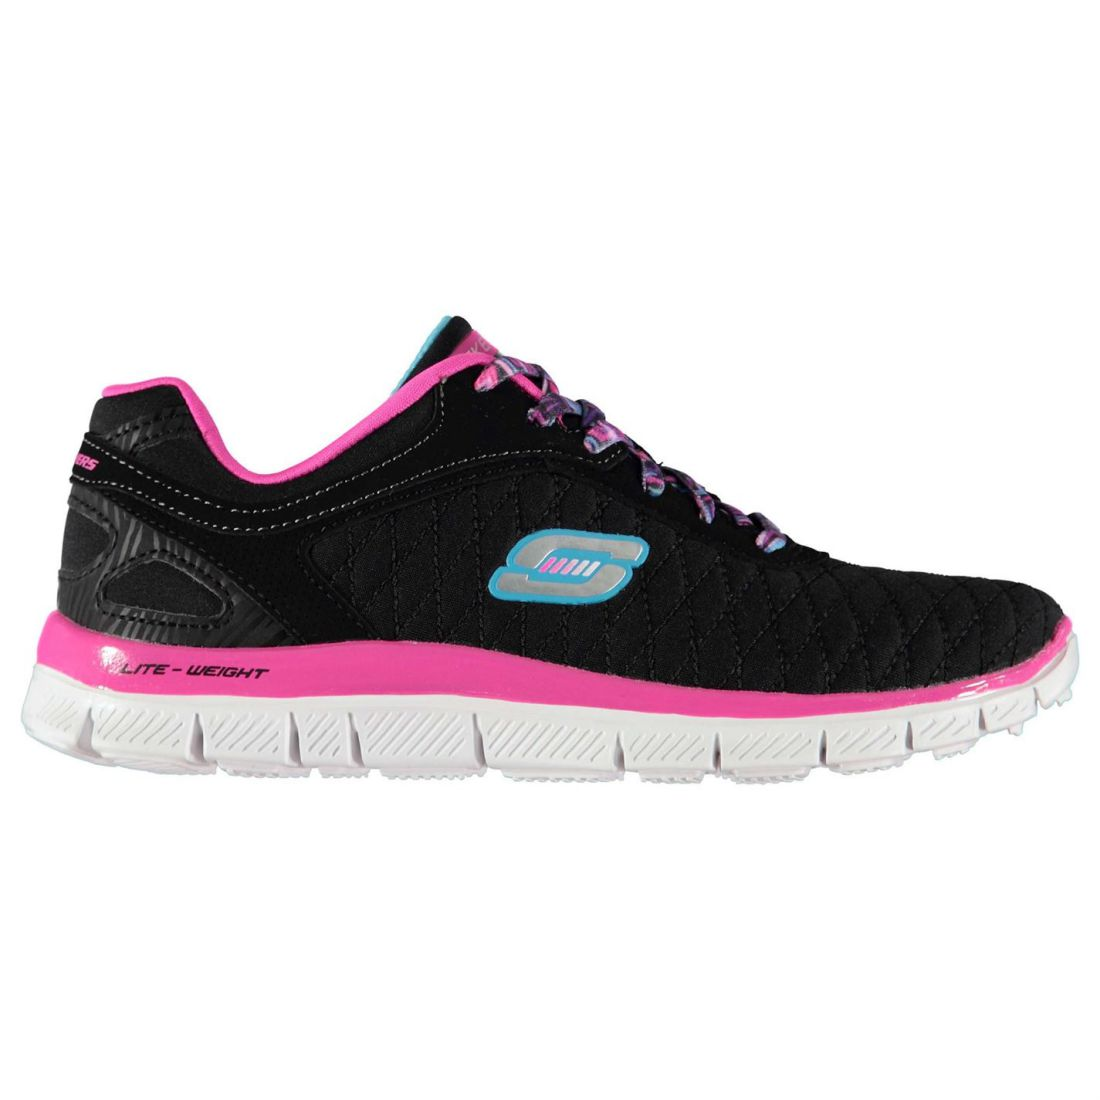 Details about Skechers Kids Girls Flex Appeal Trainers Runners Lace Up  Lightweight Comfortable 6d902d34e9